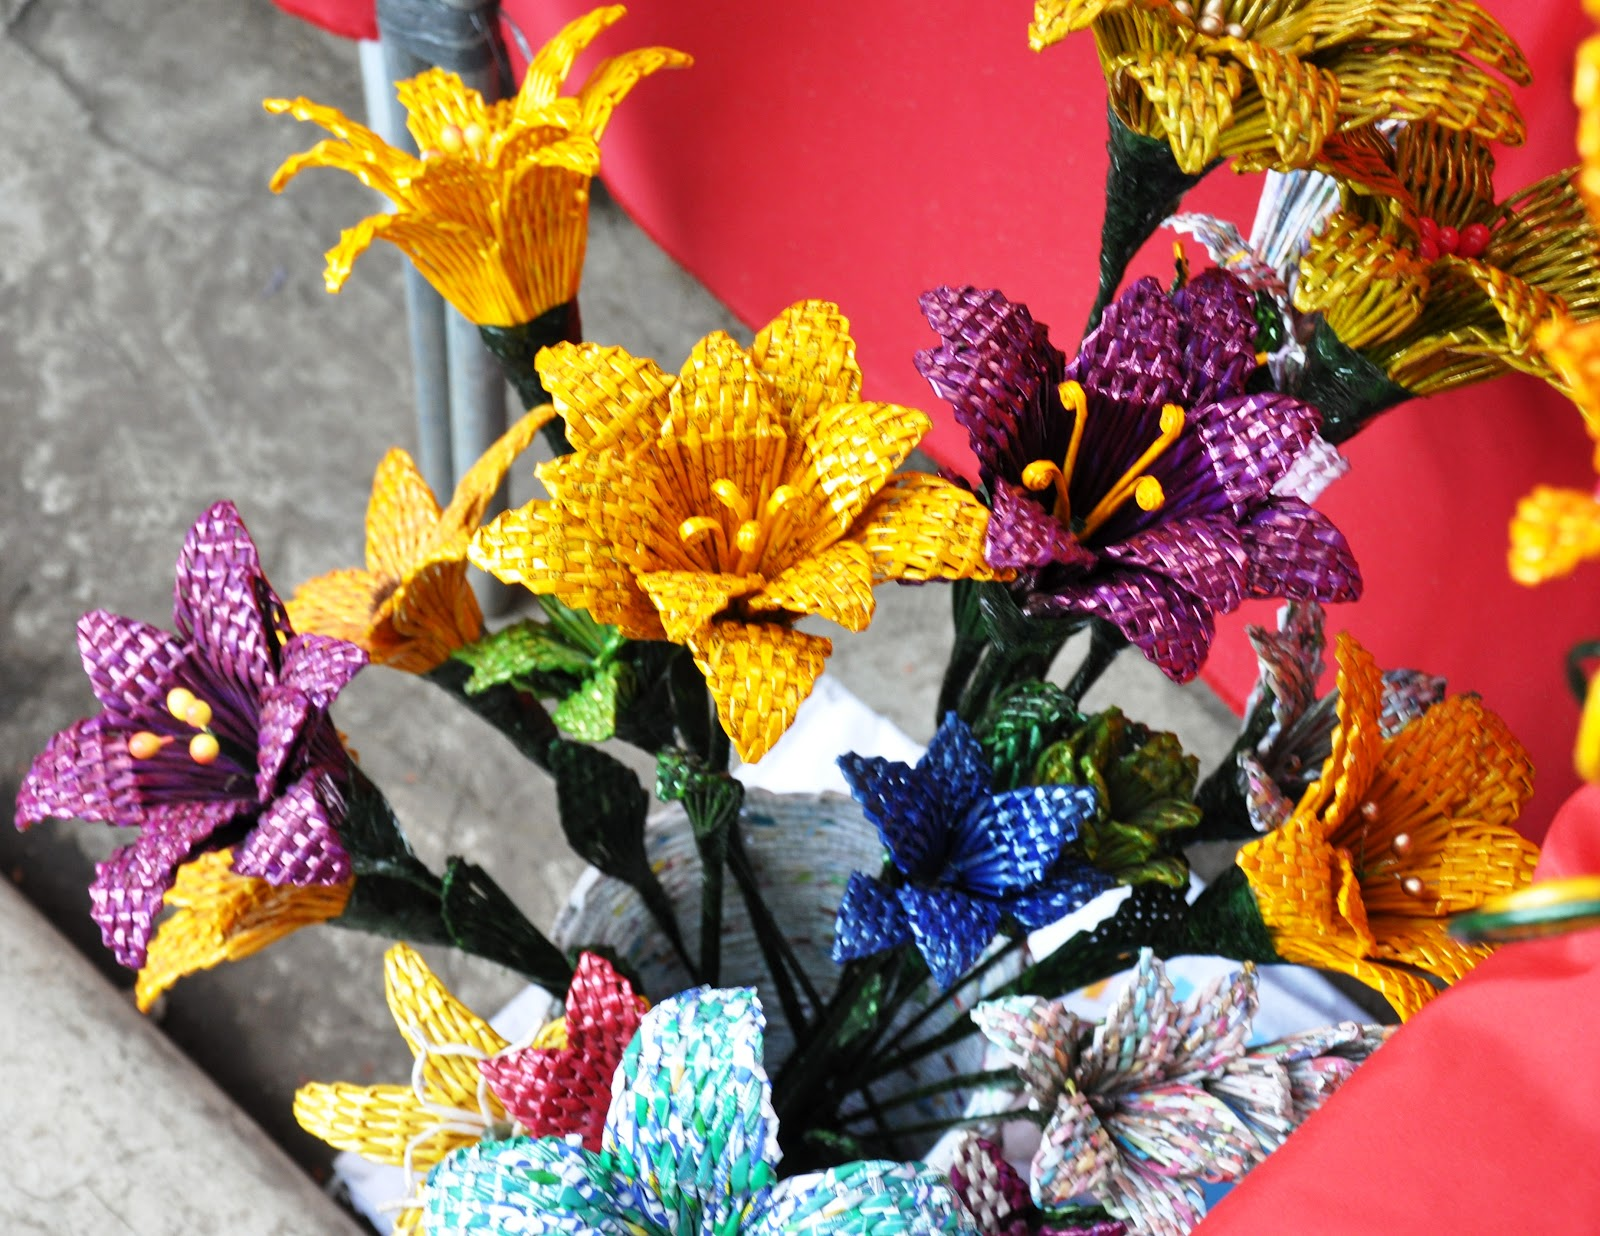 Recycled flowers made of paper and plarn reduce reuse recycle strips of paper are rolled then woven to create various flowers like roses tulips lilies and a lot more mightylinksfo